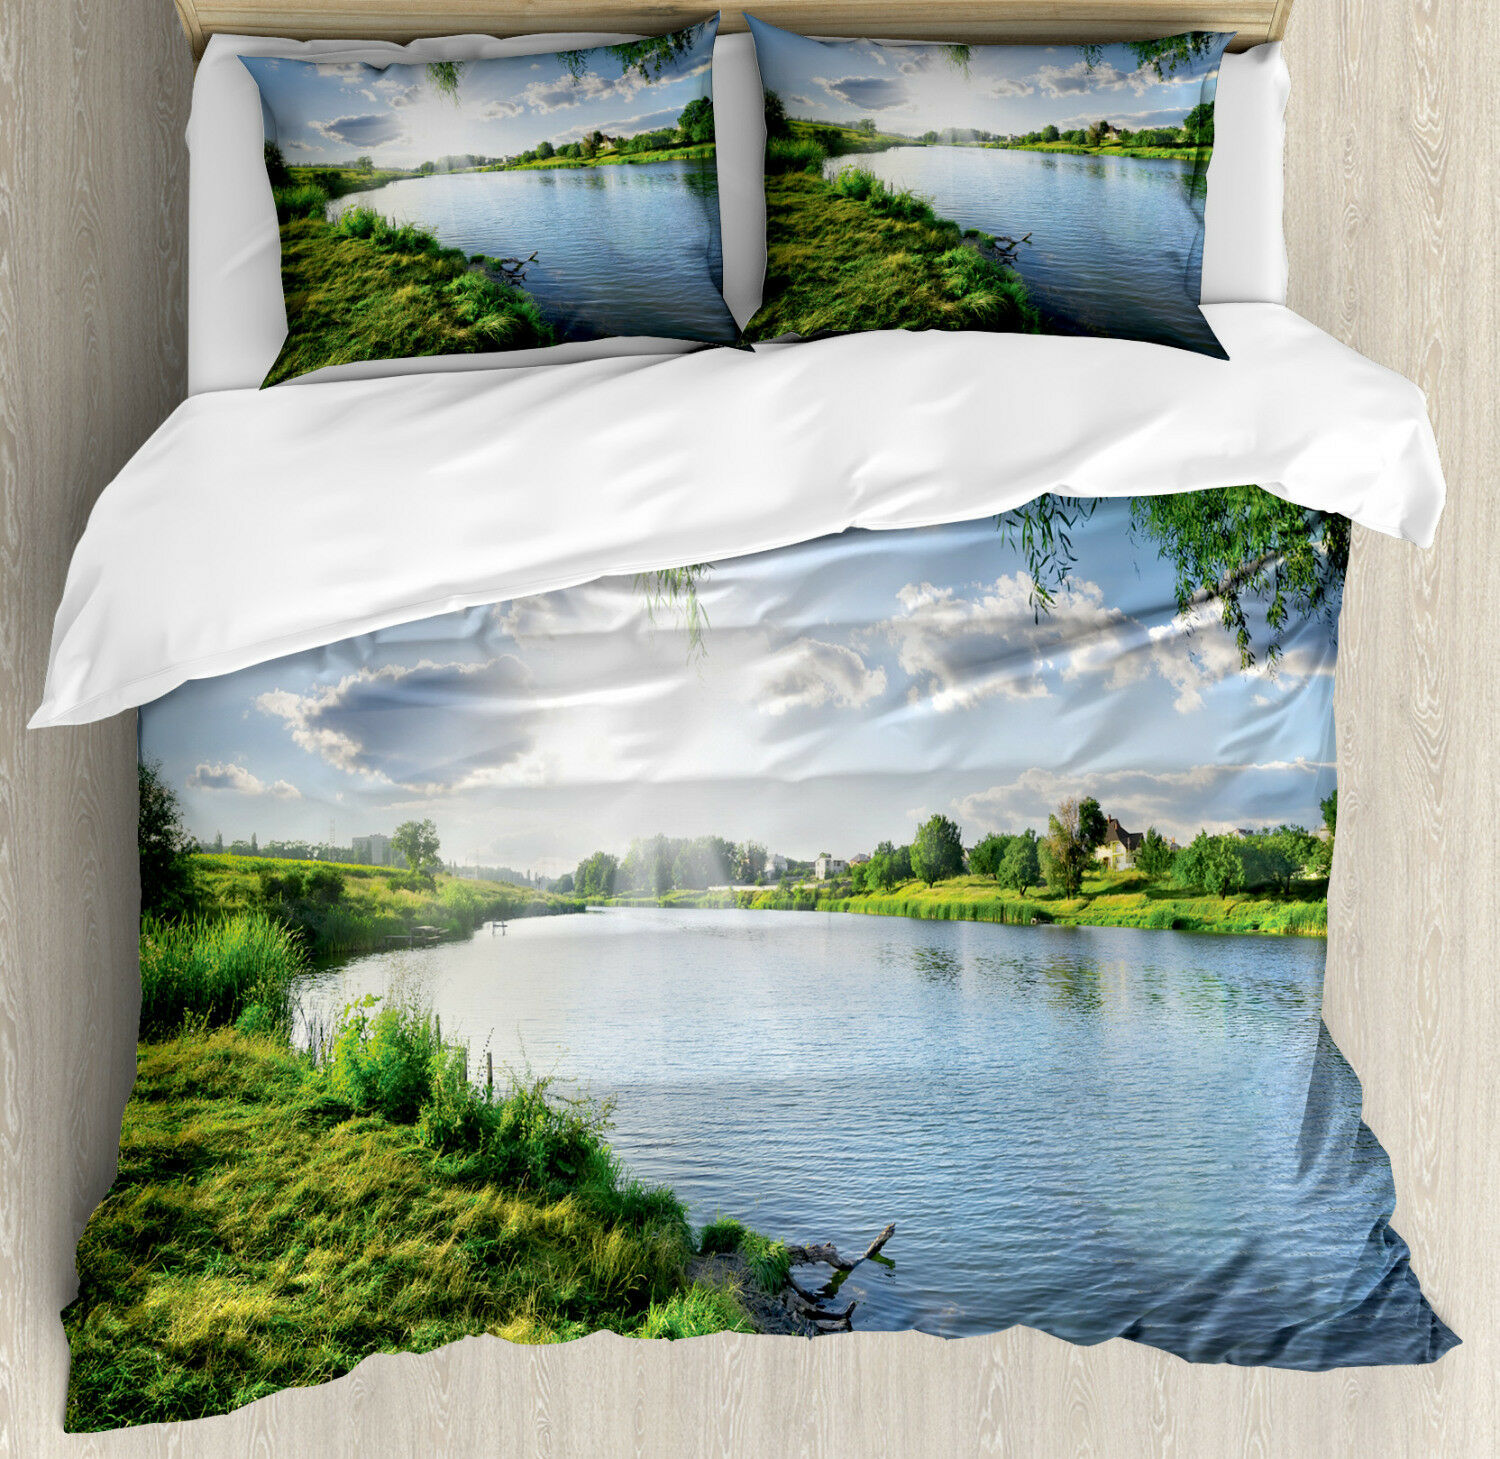 Nature Duvet Cover Set with Pillow Shams Calm River in Summer Print